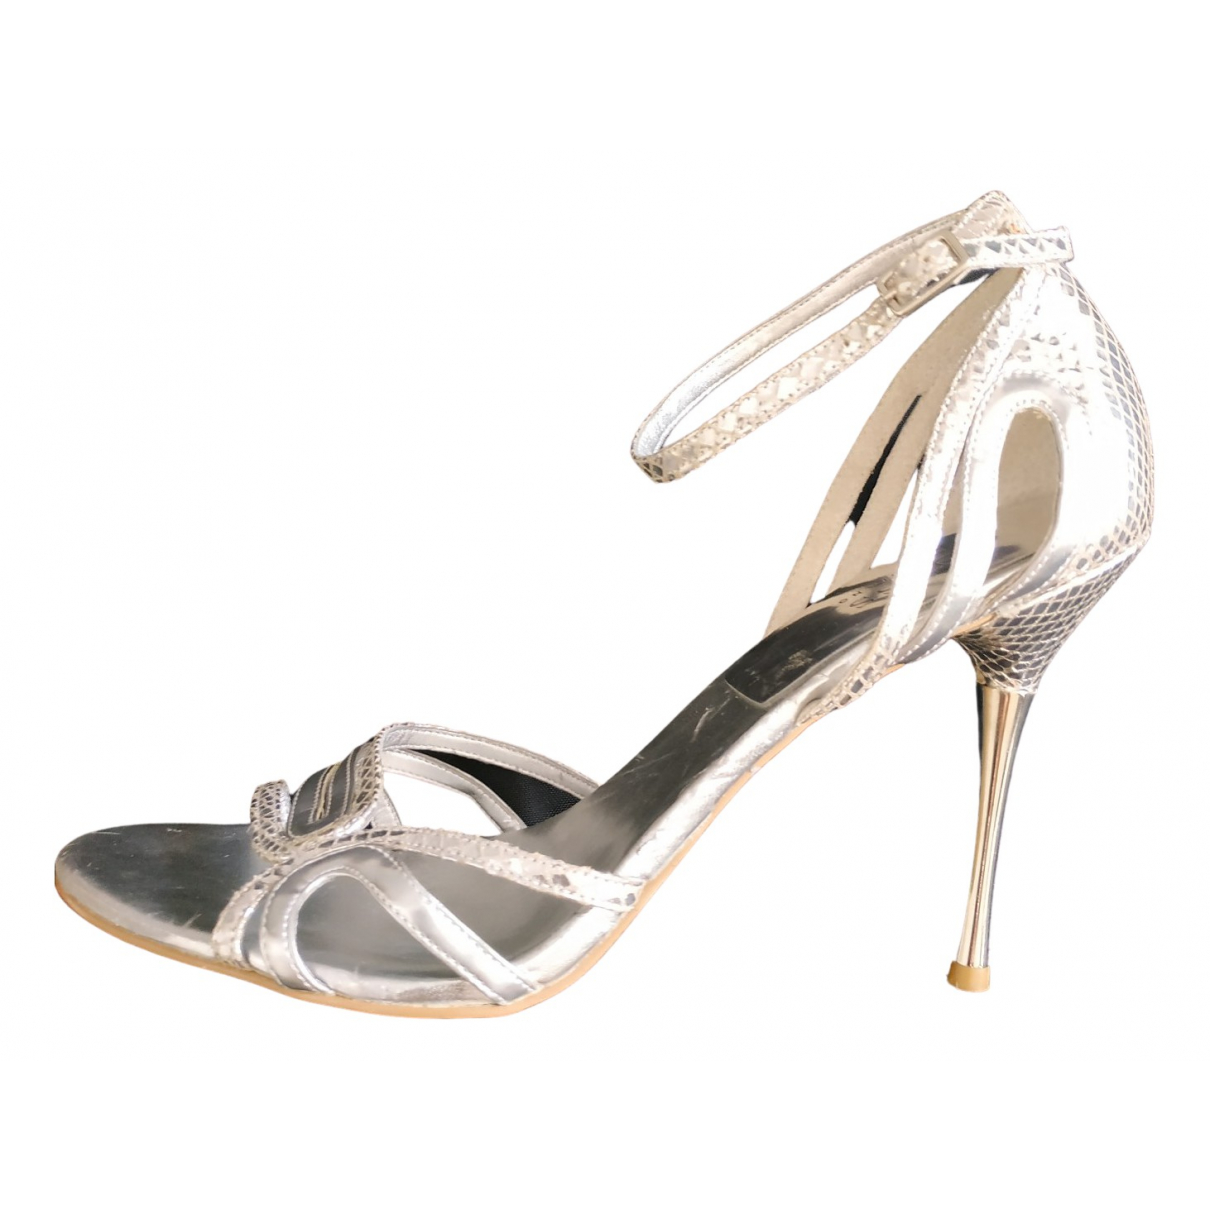 Guess N Silver Leather Sandals for Women 41.5 EU